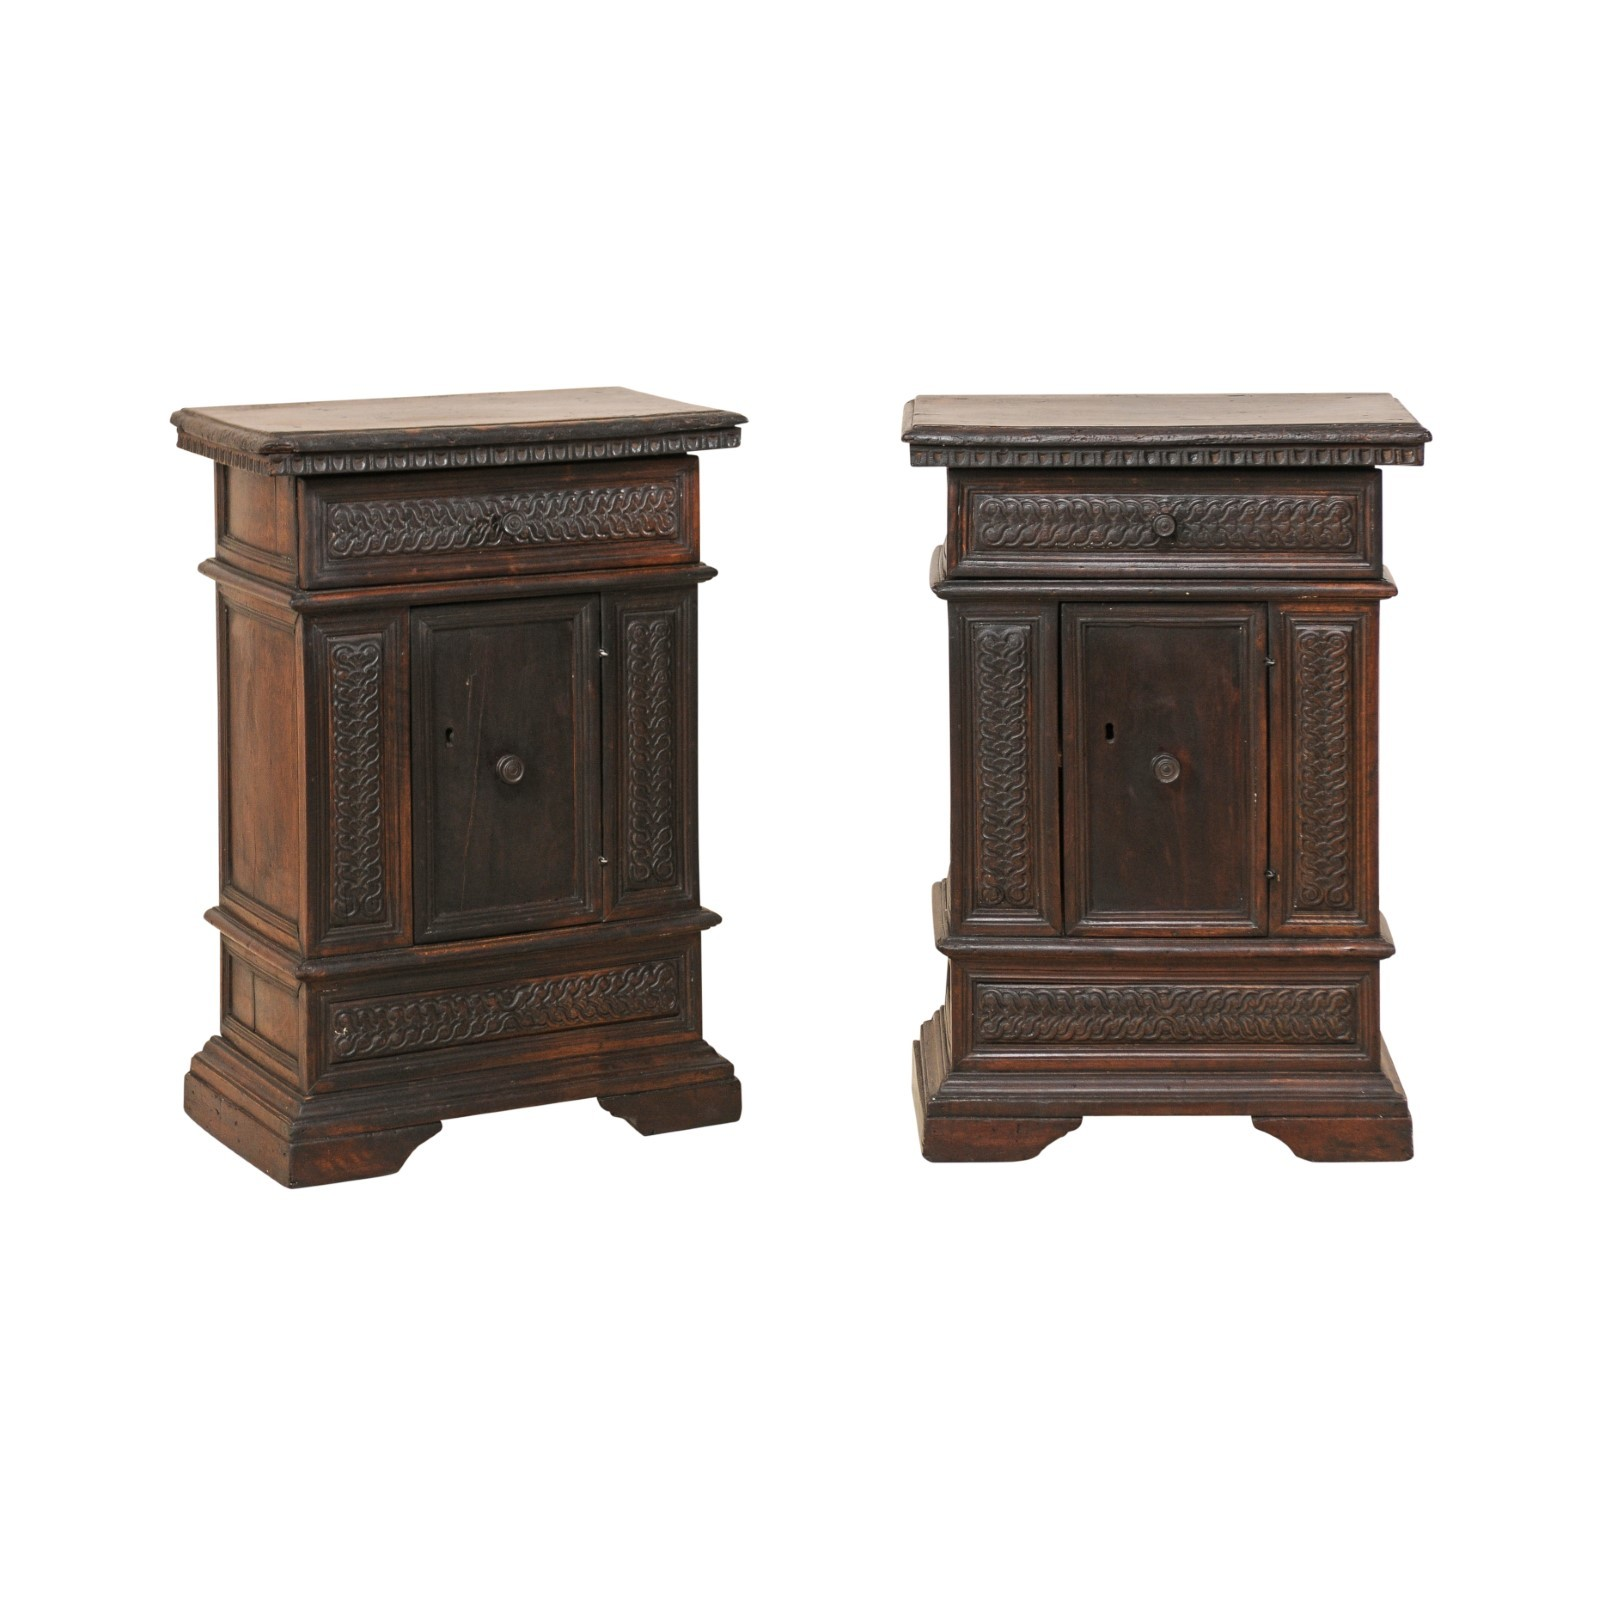 Pair Small Walnut Commodes, 18th C. Italy